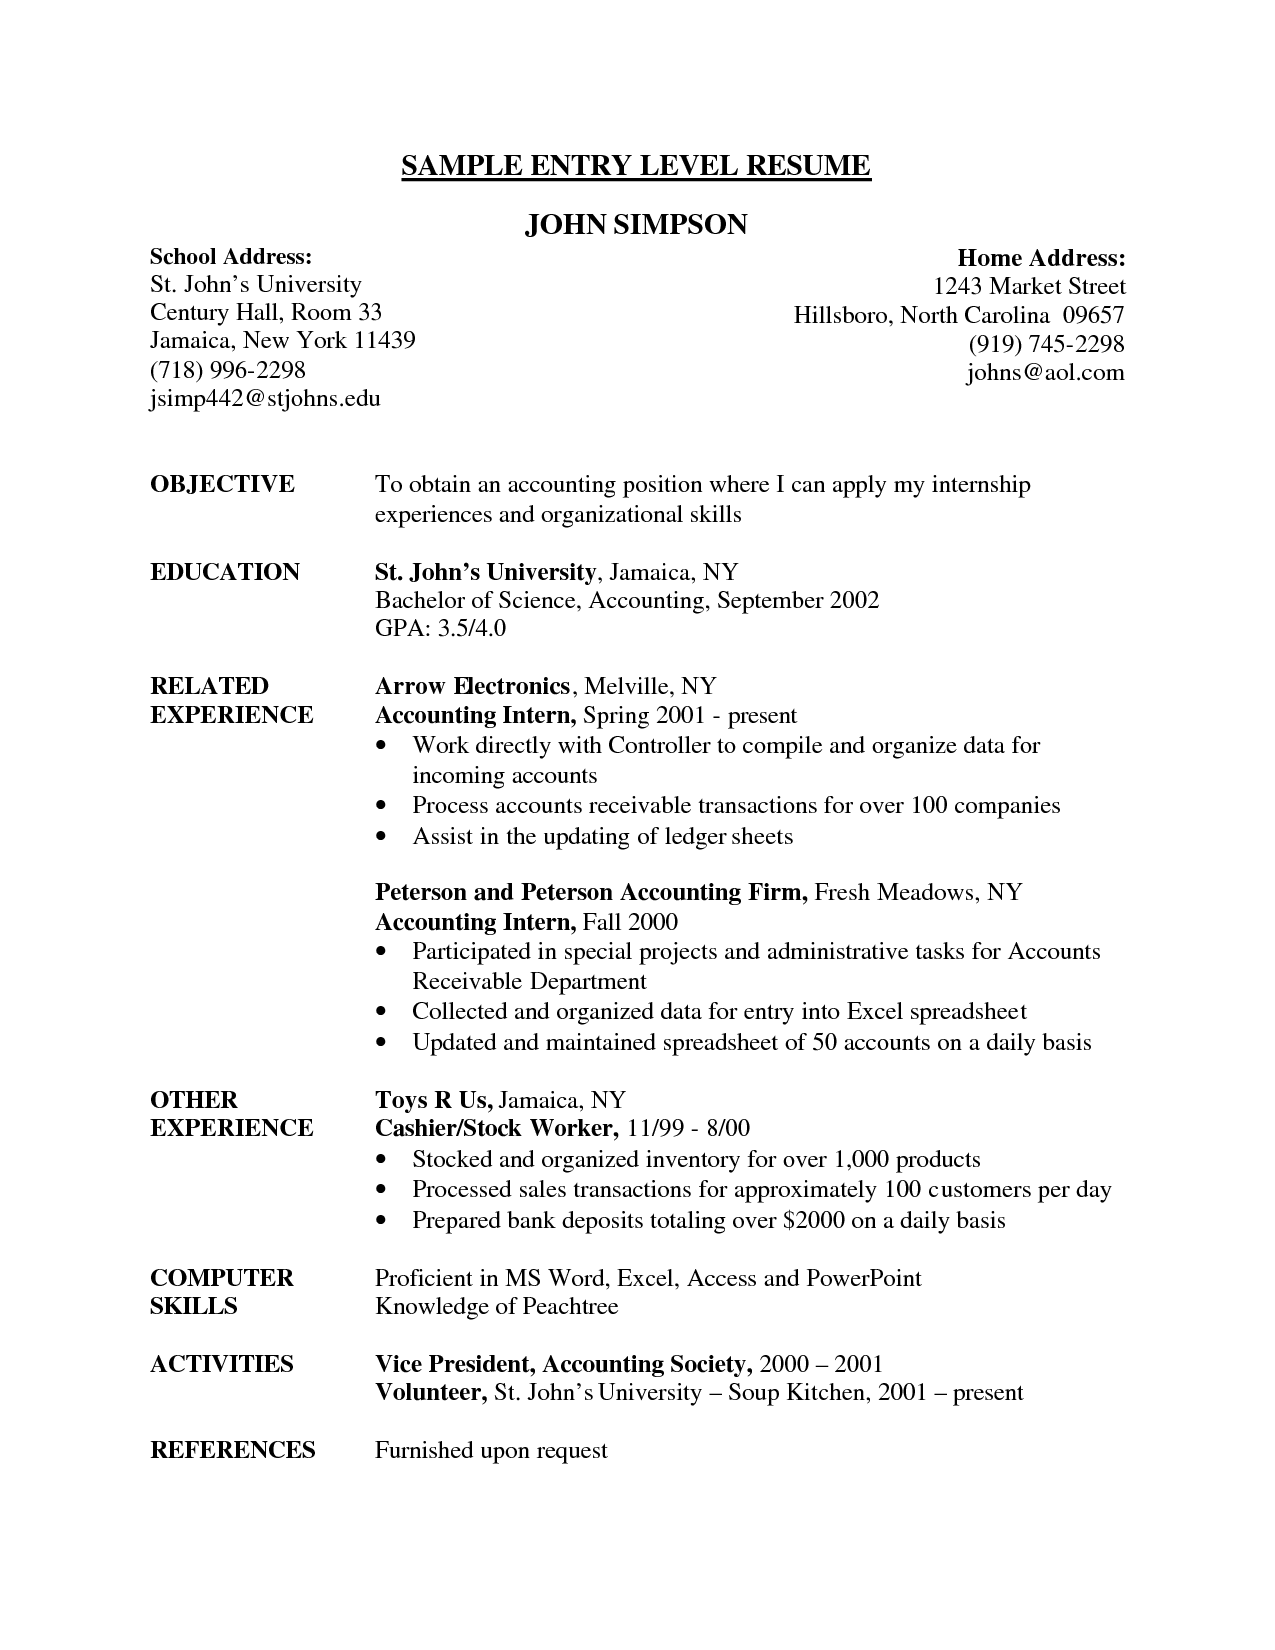 Resume Profile Examples Example Of Resume Profile Entry Level  Httpwwwresumecareer